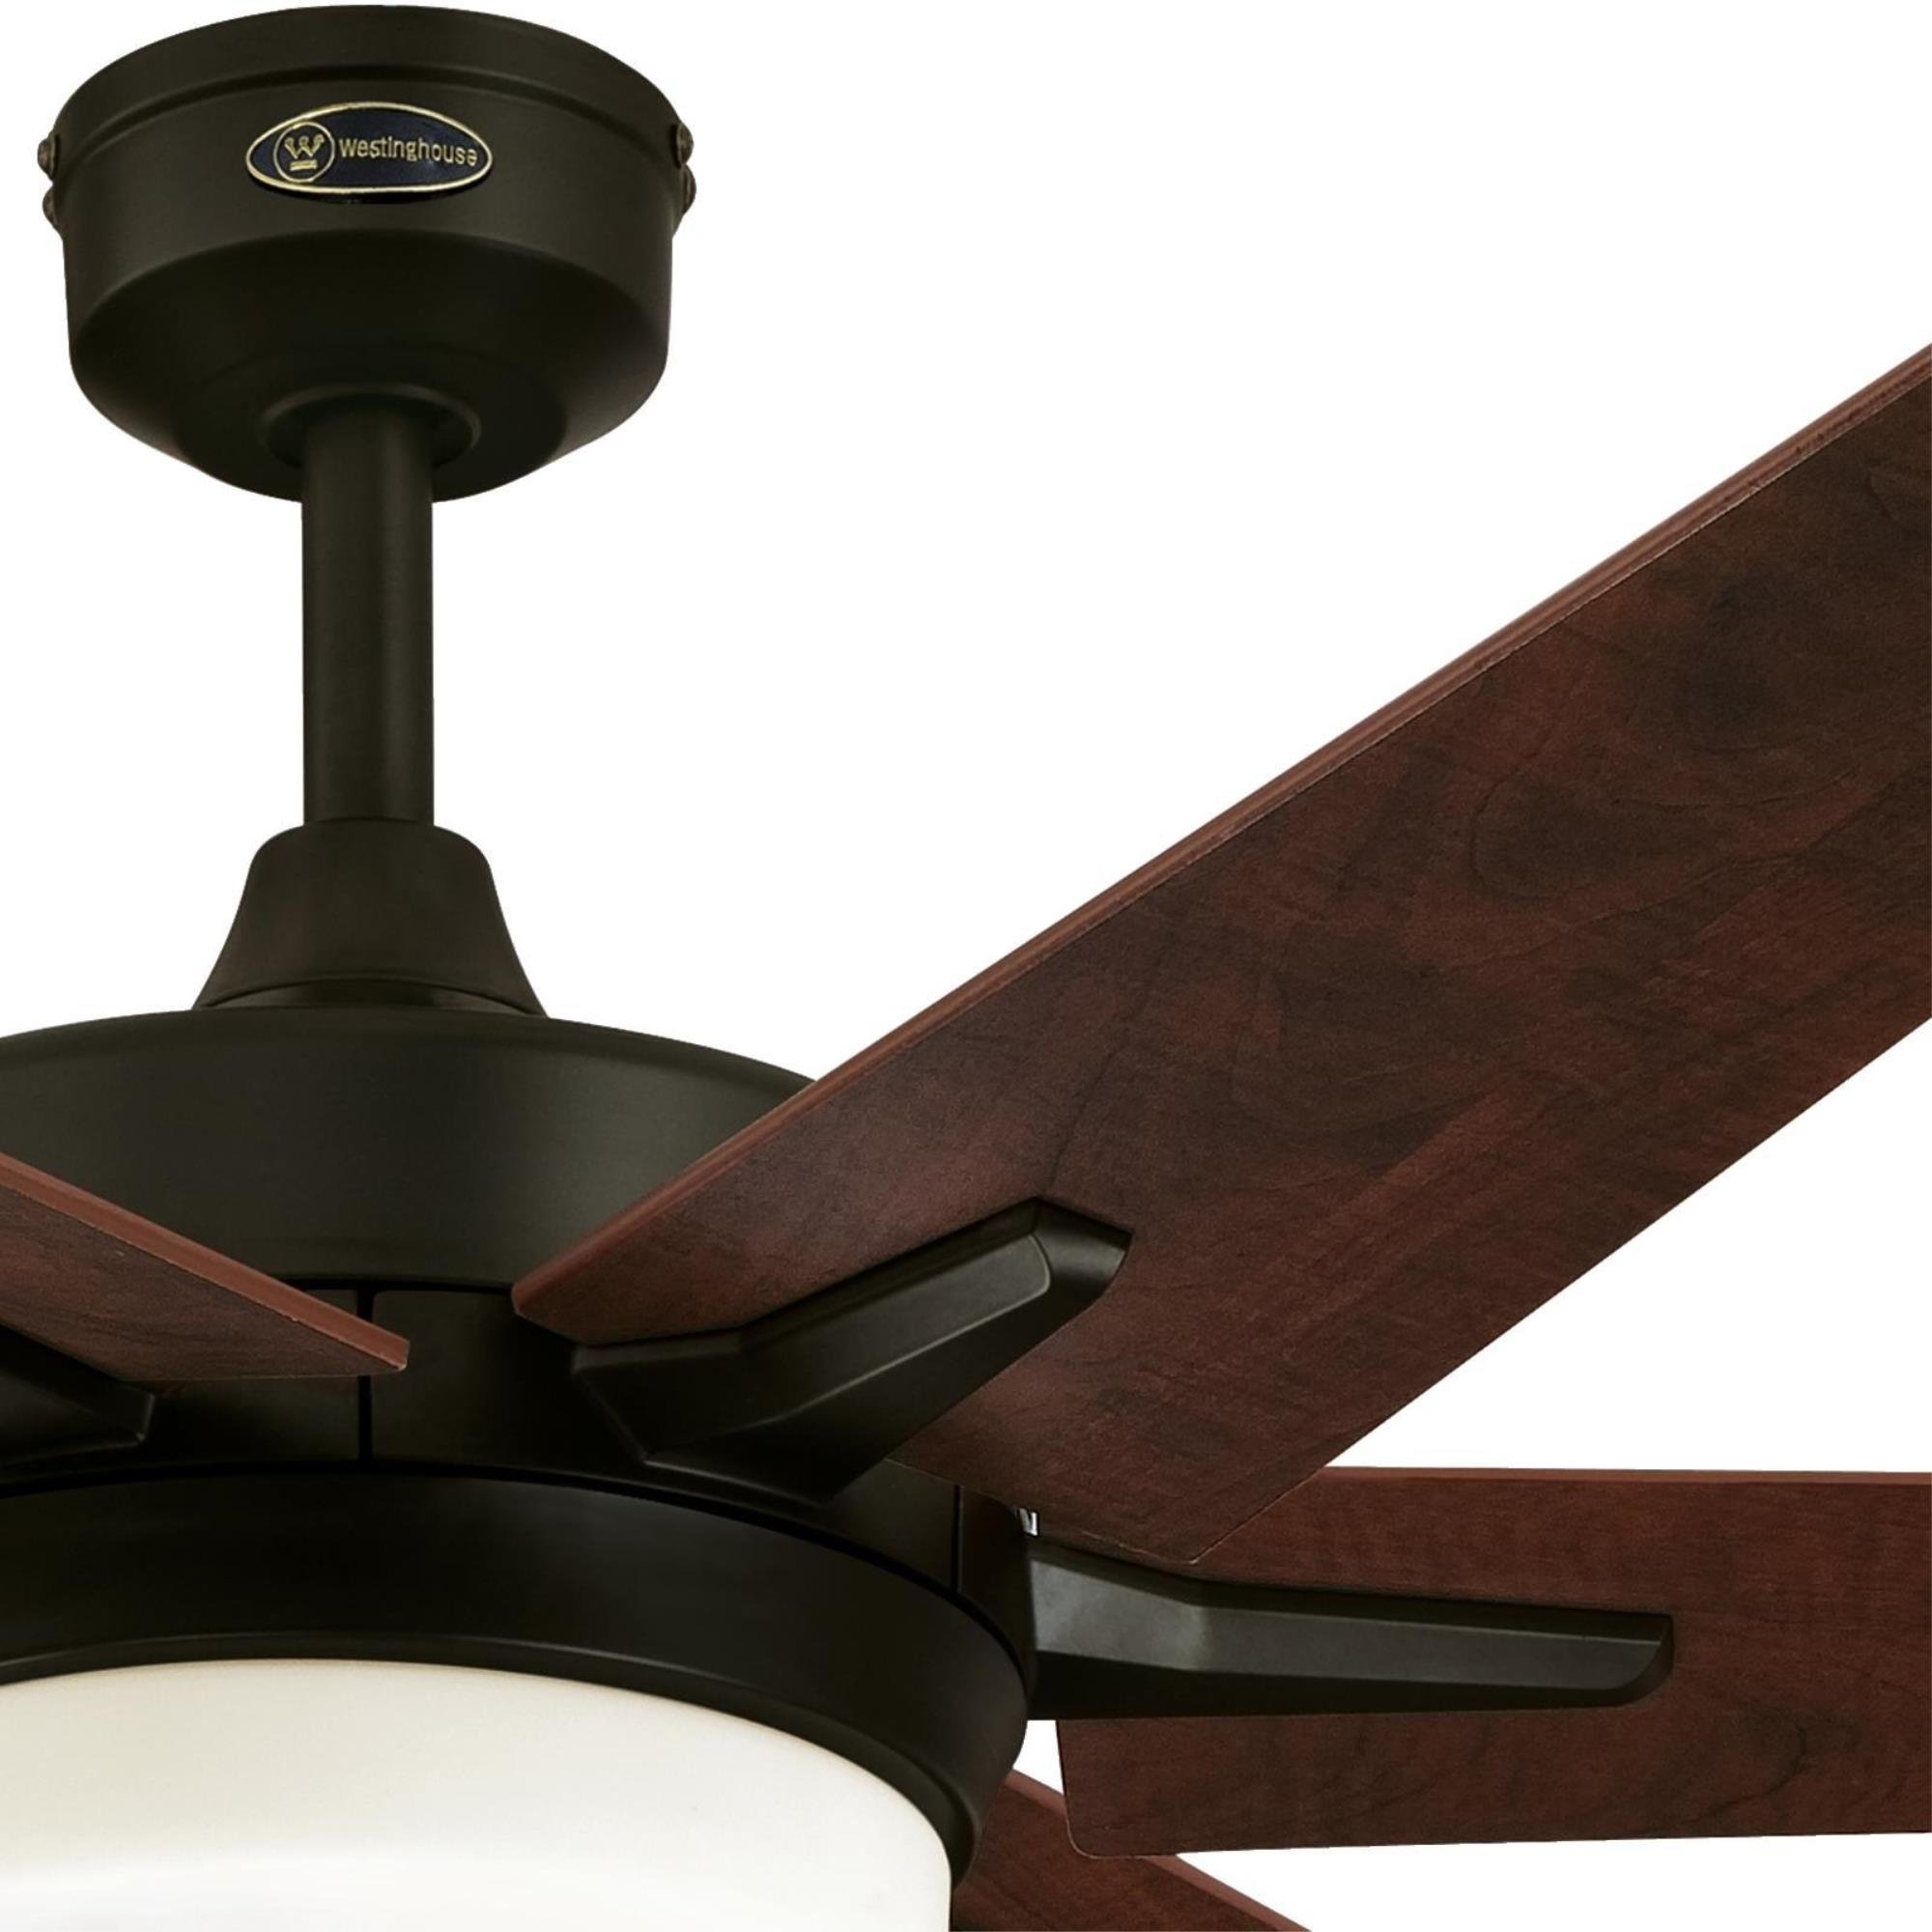 Westinghouse Lighting Remote Control Included 7207800 Cayuga 60-inch Oil Rubbed Bronze Indoor Ceiling Fan, Dimmable LED Light Kit with Opal Frosted Glass, by Westinghouse Lighting (Image #6)